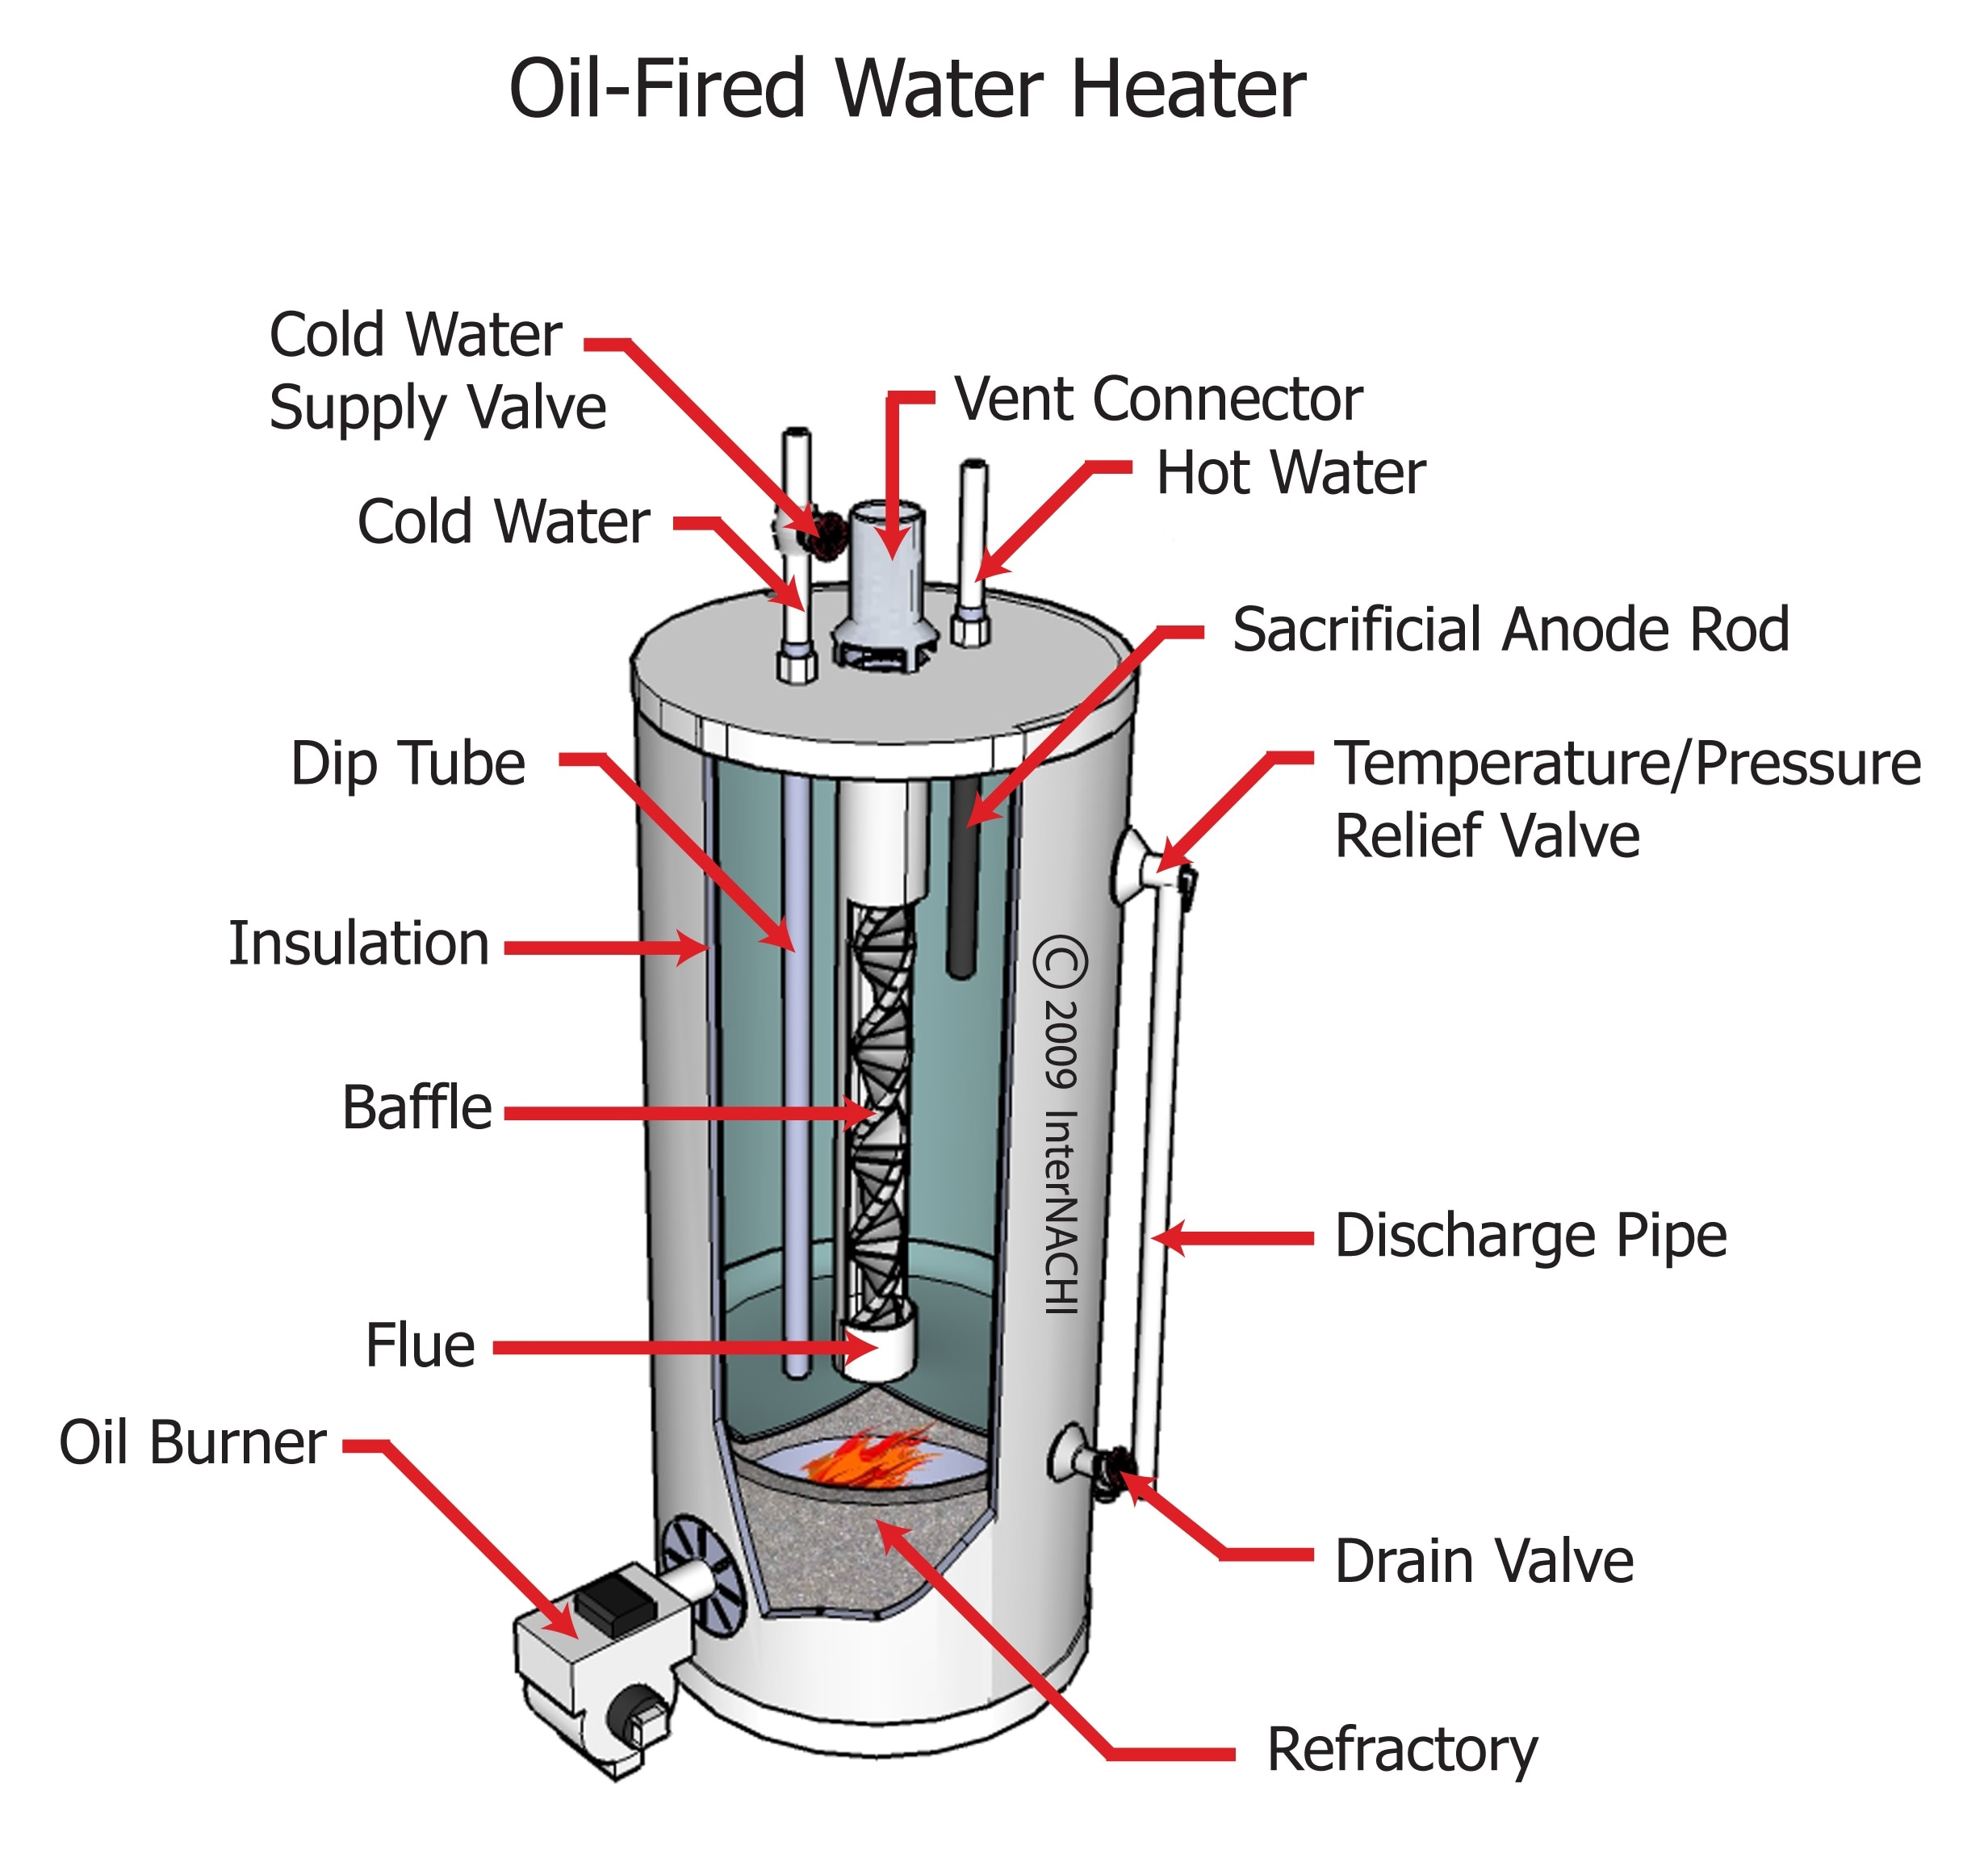 Typical Hot Water Heater Wiring Schematic Trusted Diagrams Rv Diagram Oil Block And U2022 For Electrical